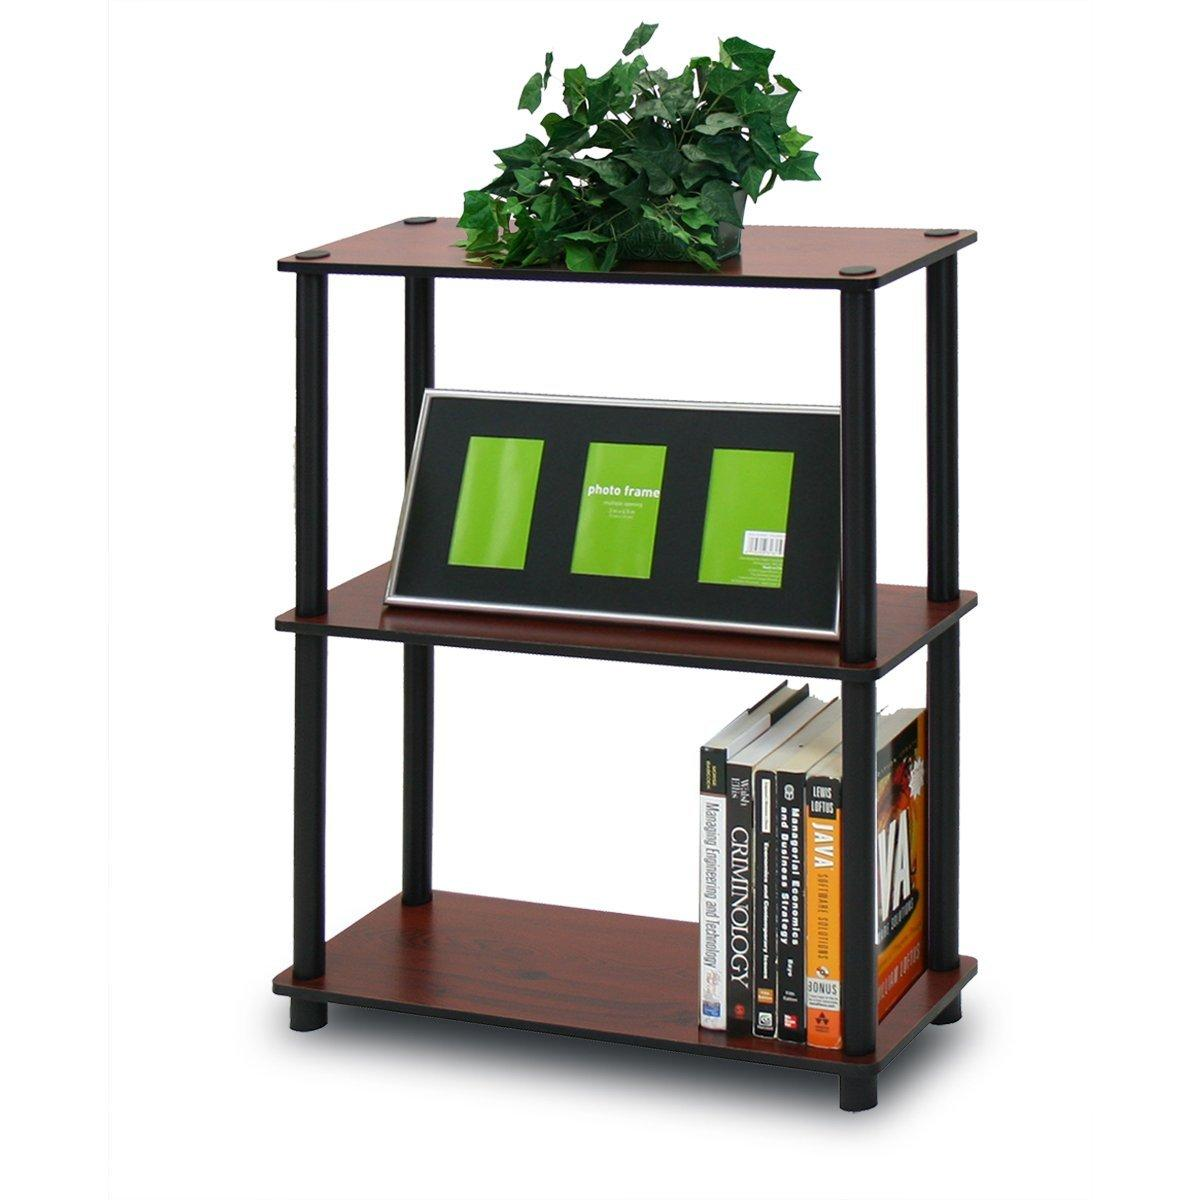 $25.92 Furinno 10024DC/BK Turn-N-Tube 3-Tier Compact Multipurpose Shelf Display Rack,